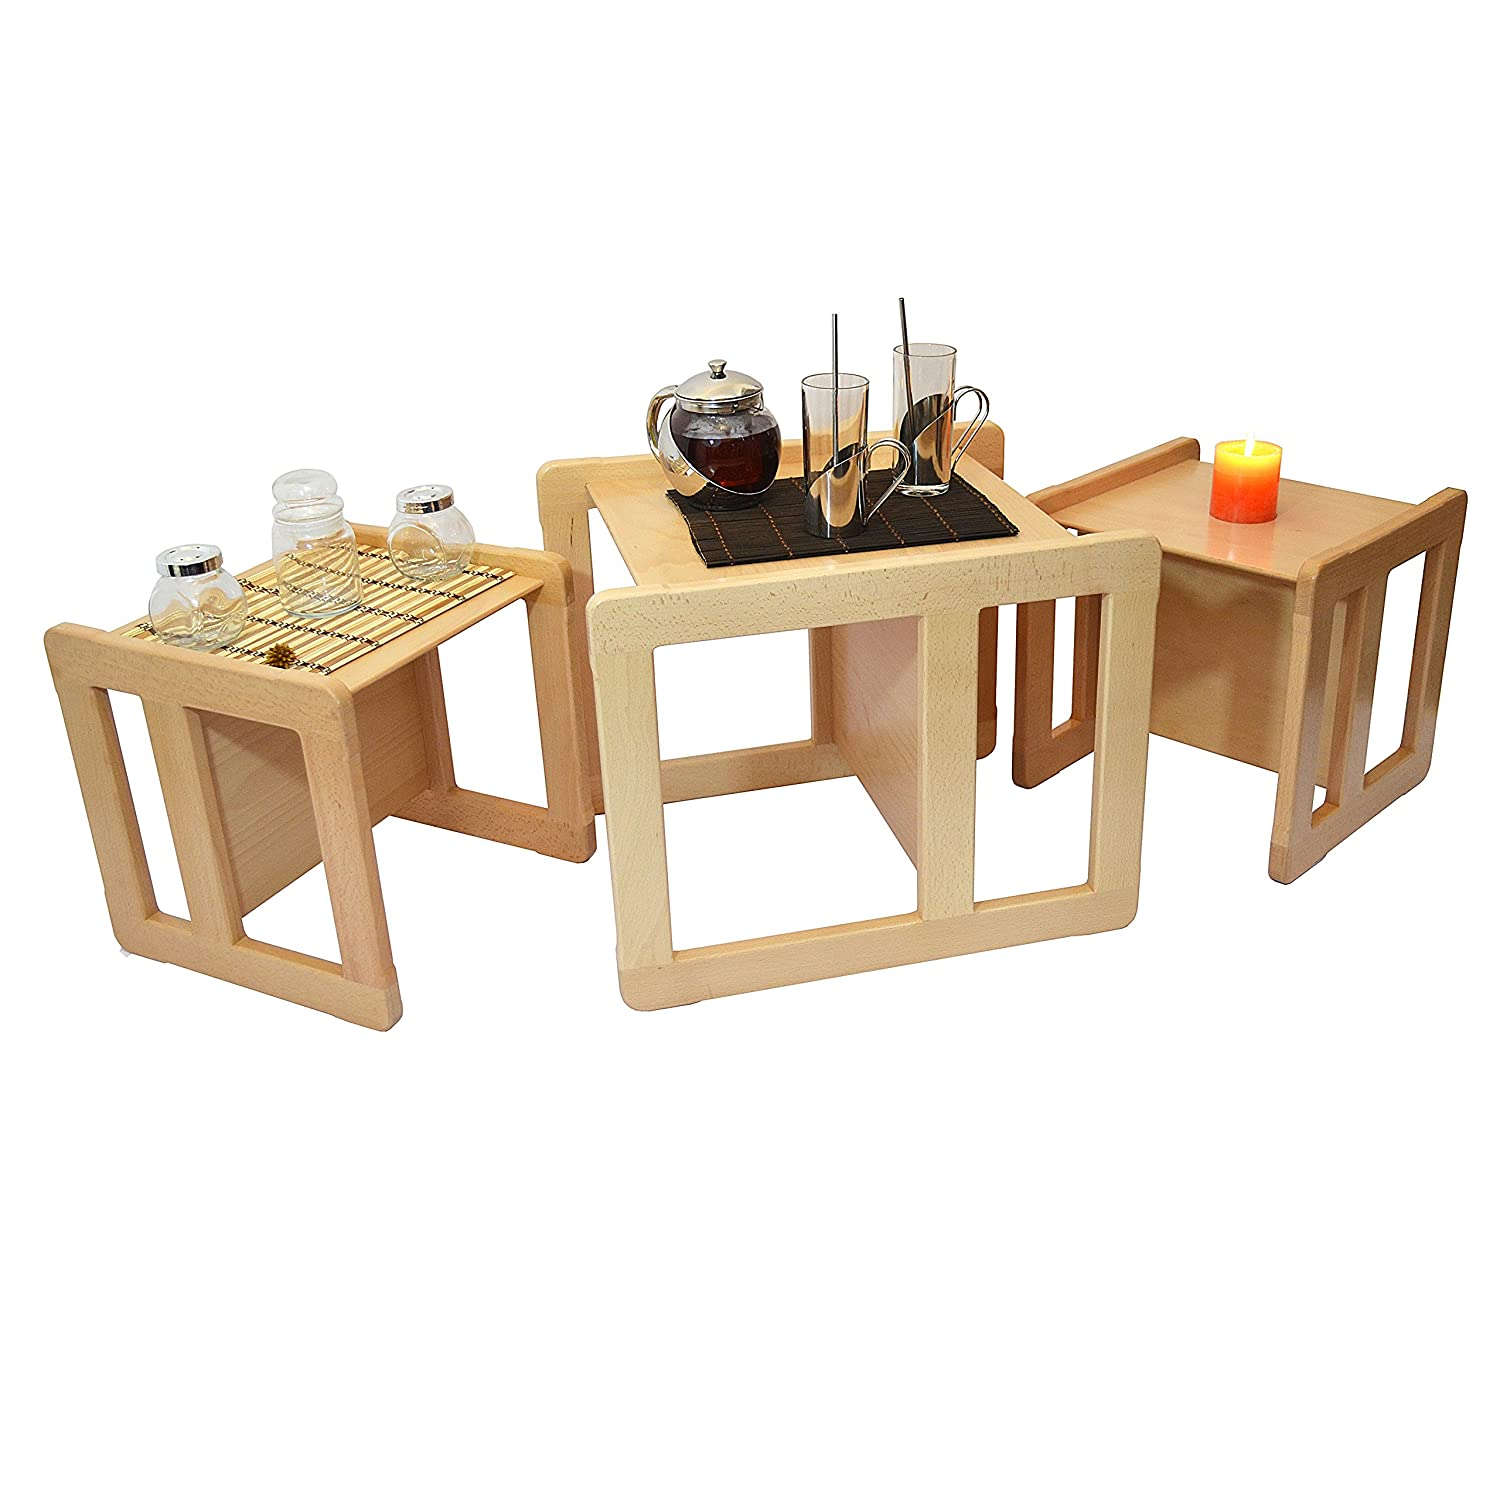 3 in 1 Children s Multifunctional Furniture Set of 3 Two Small